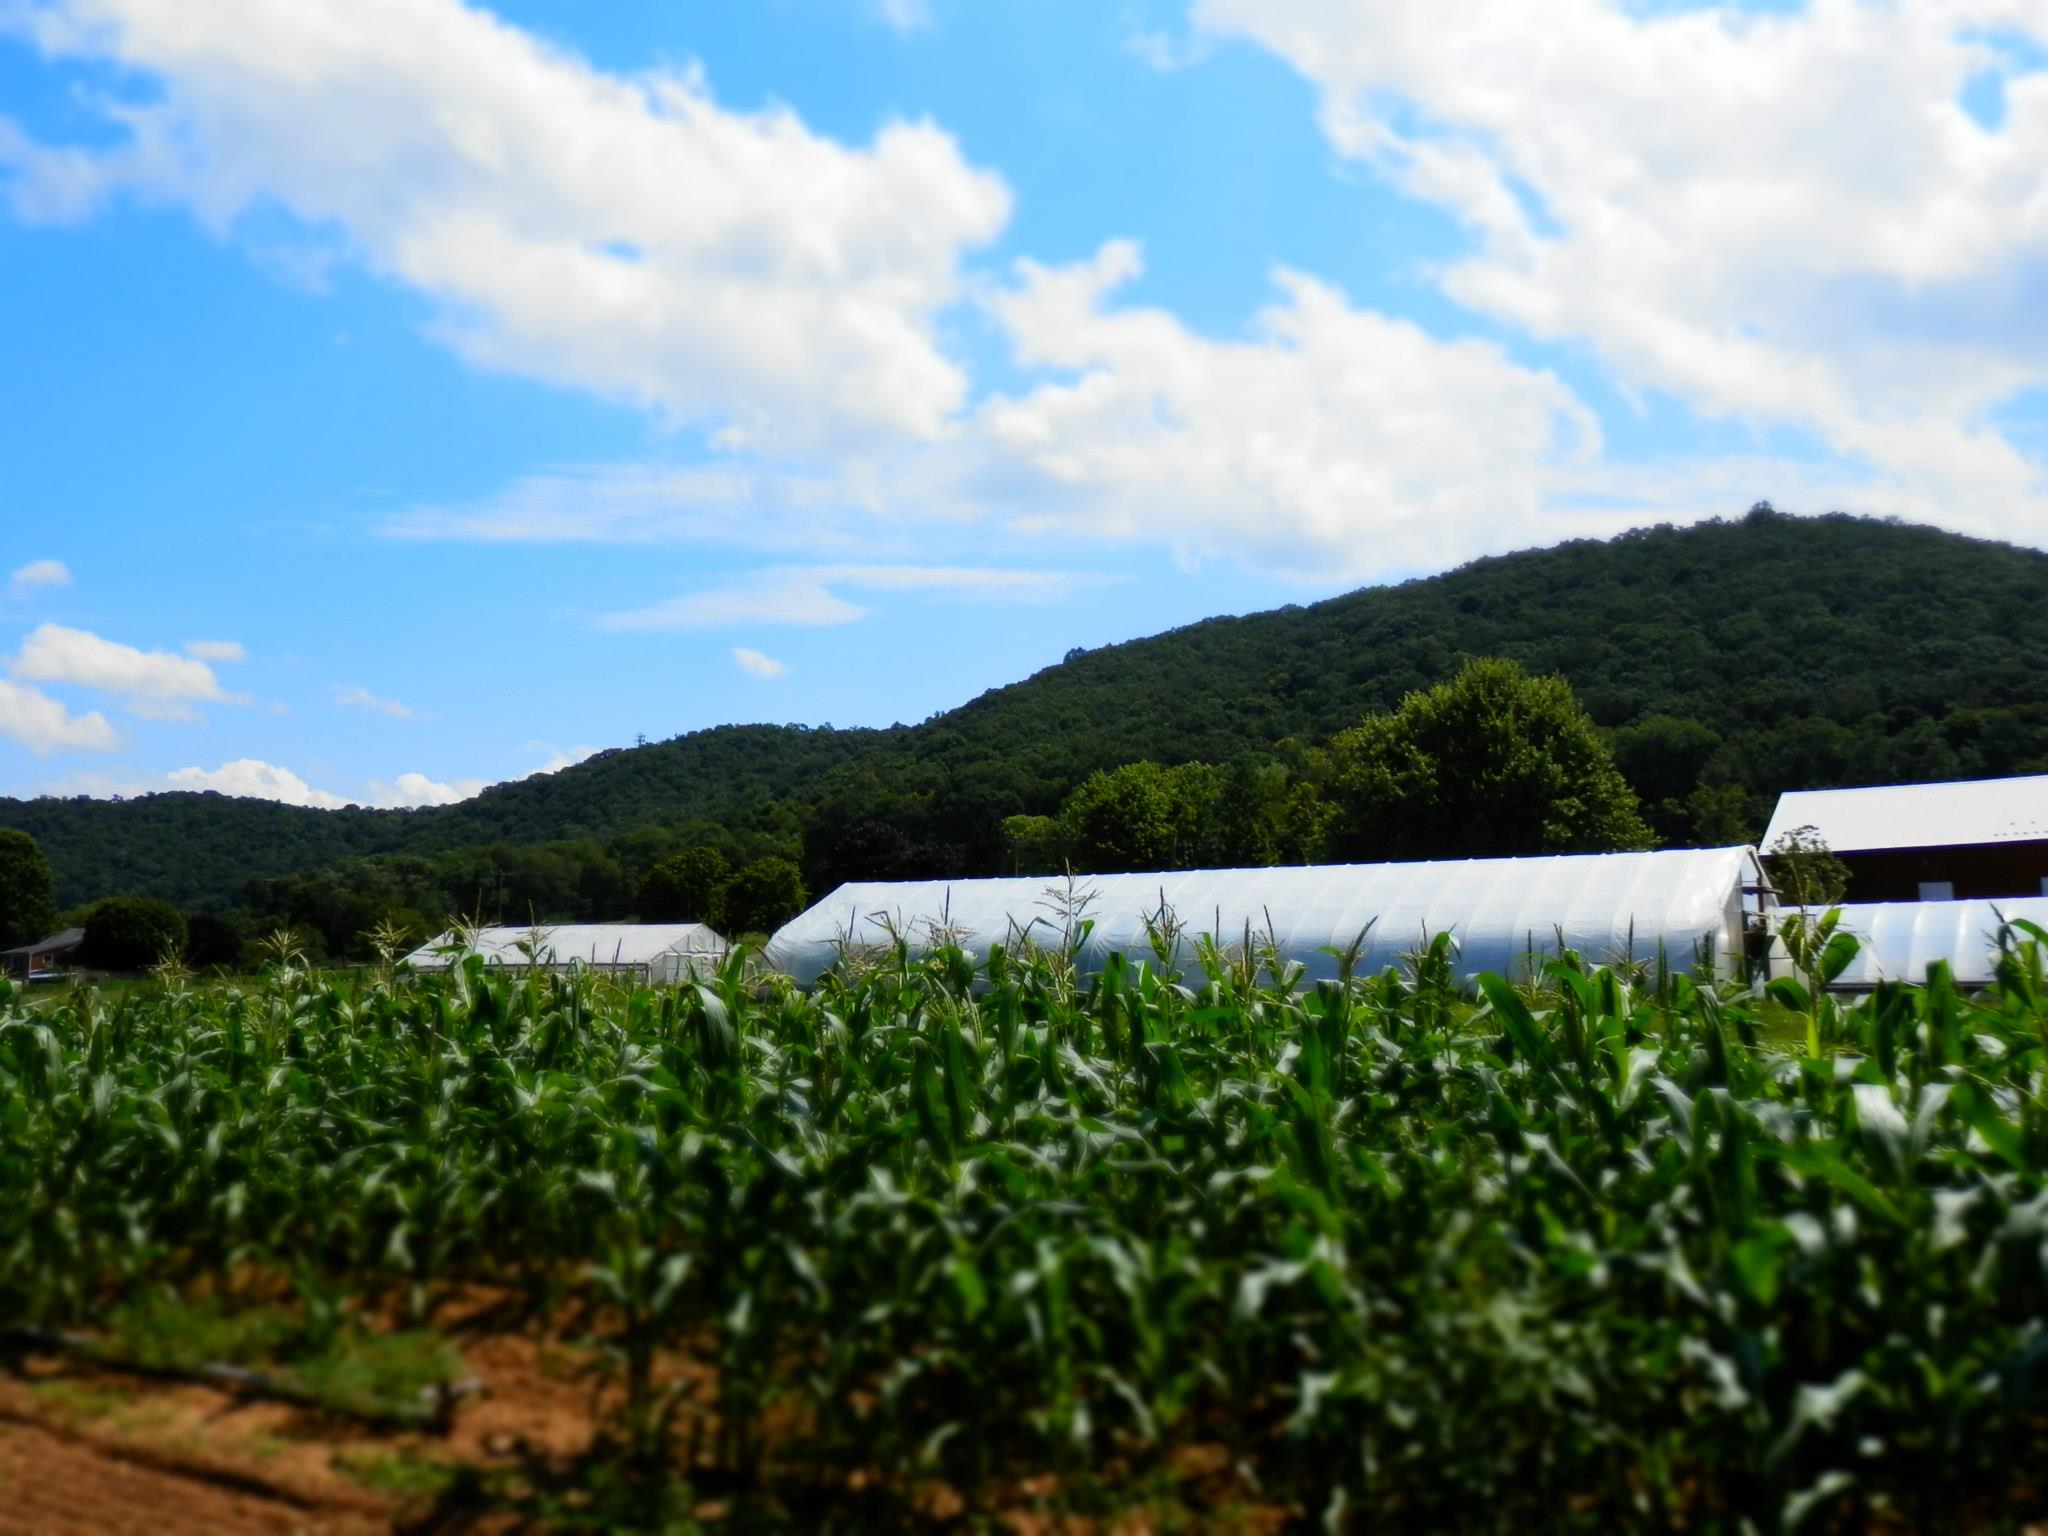 Farm (Photo by Meghan Filoromo)